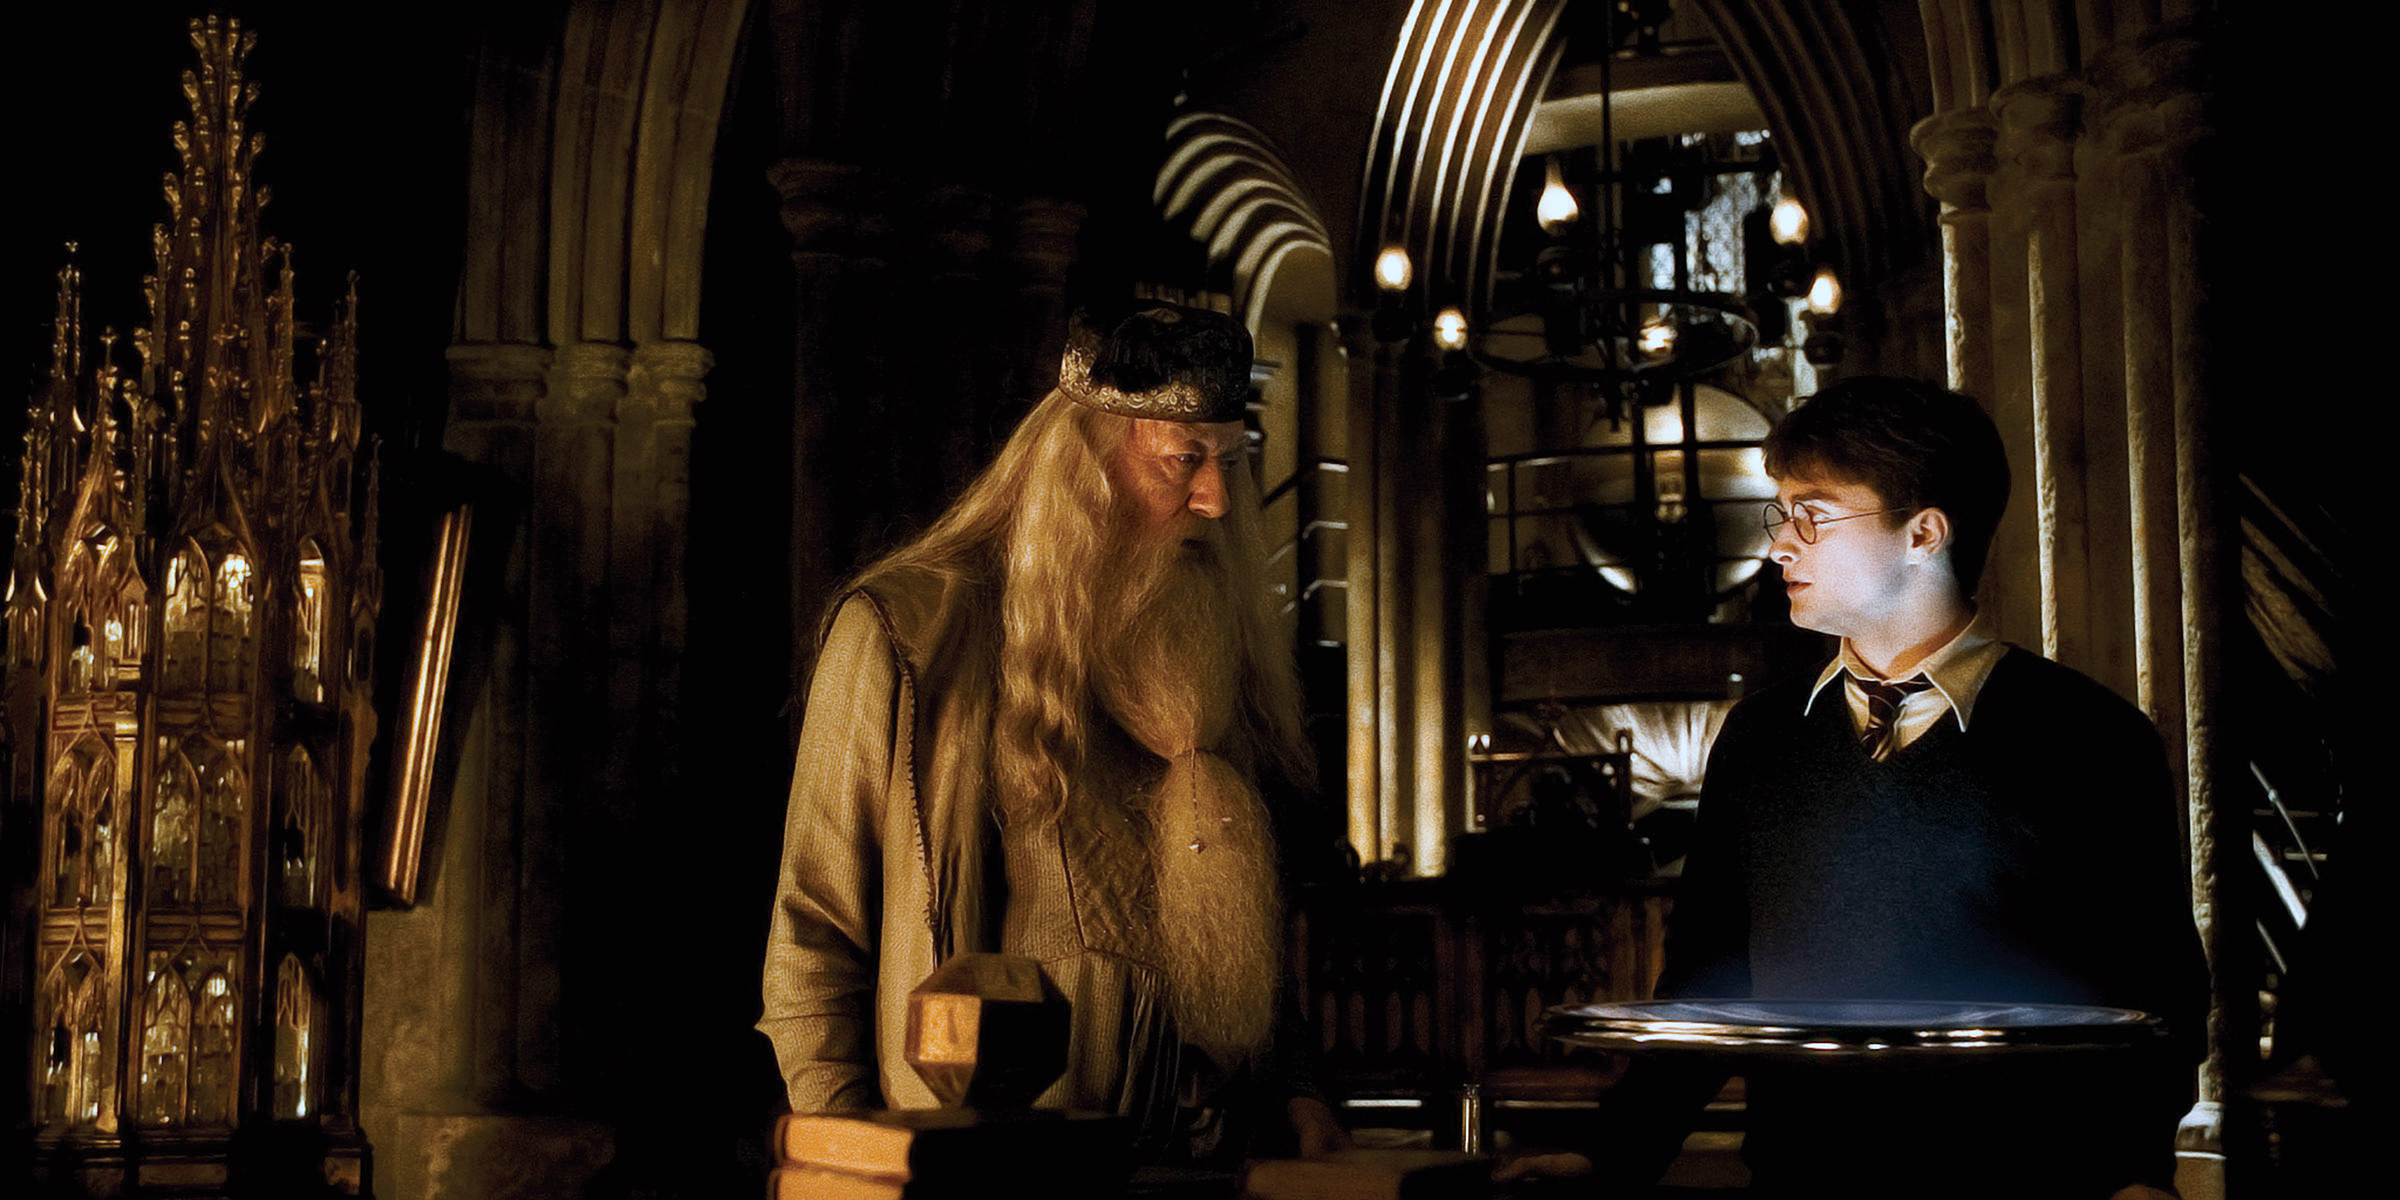 If 'Harry Potter' took place in 2019, here's what Hogwarts would ...